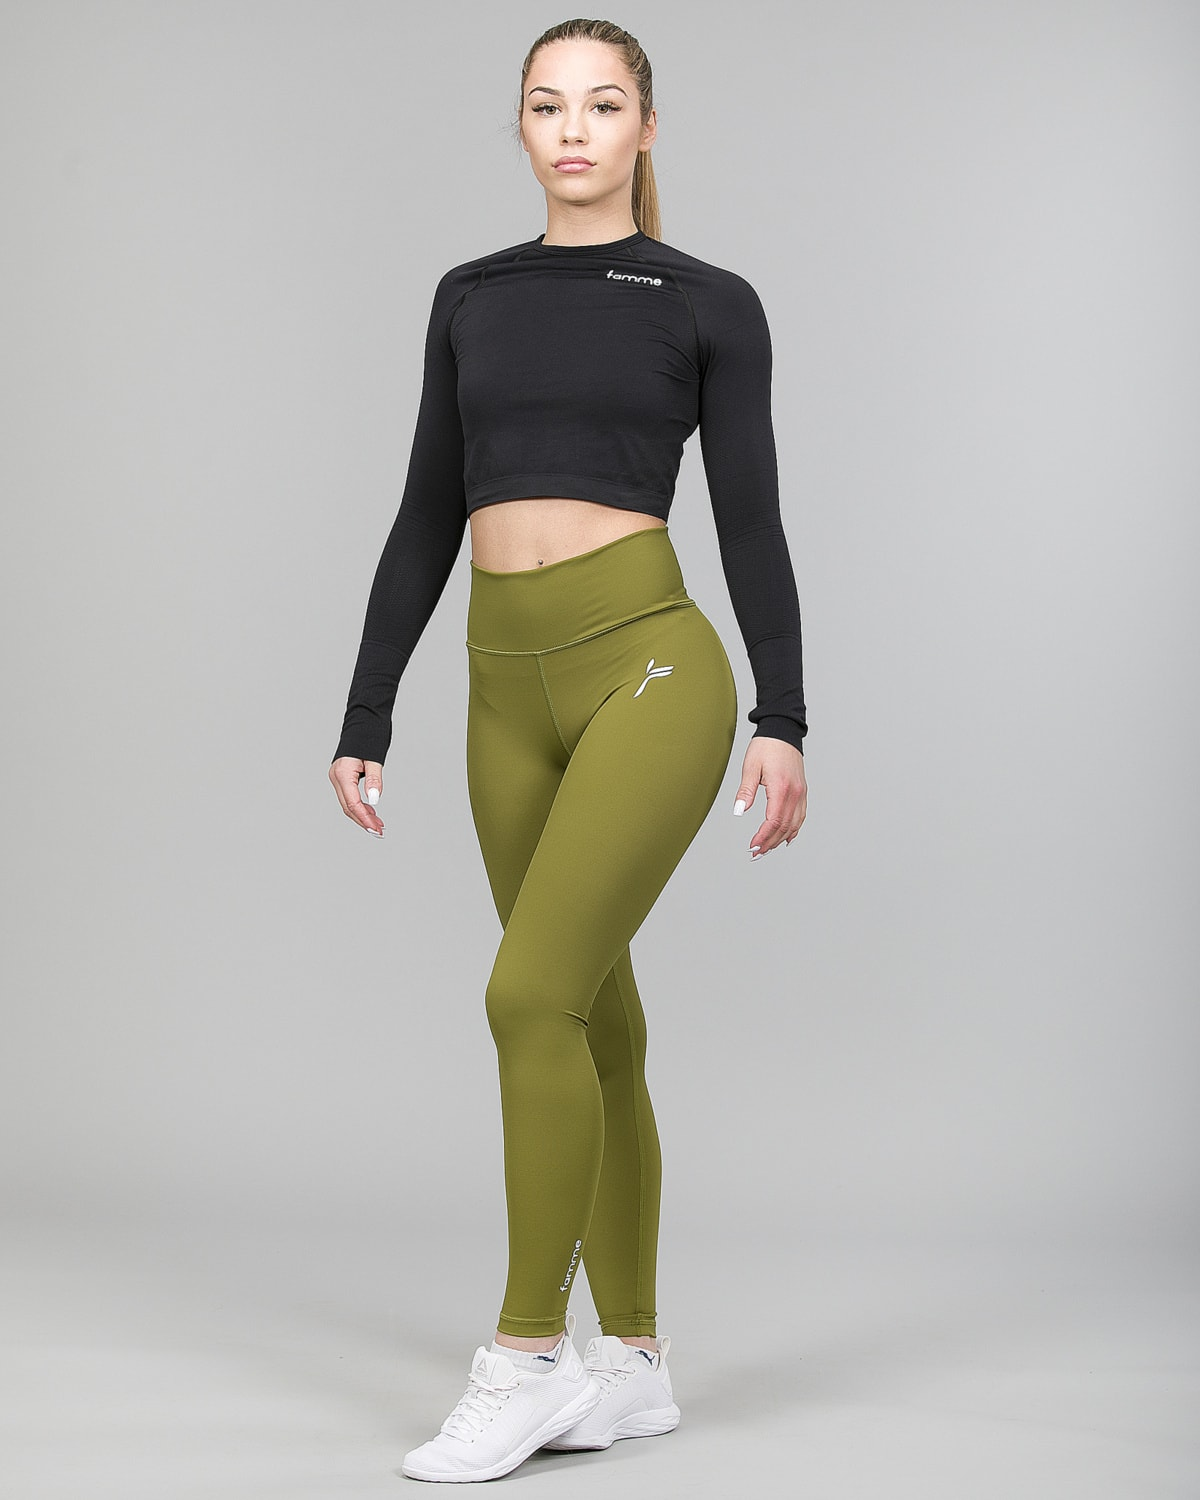 Famme Ocean Crop Top Black ocls-bk and Essential High Waist Leggings Forest Green ehwt-fg h